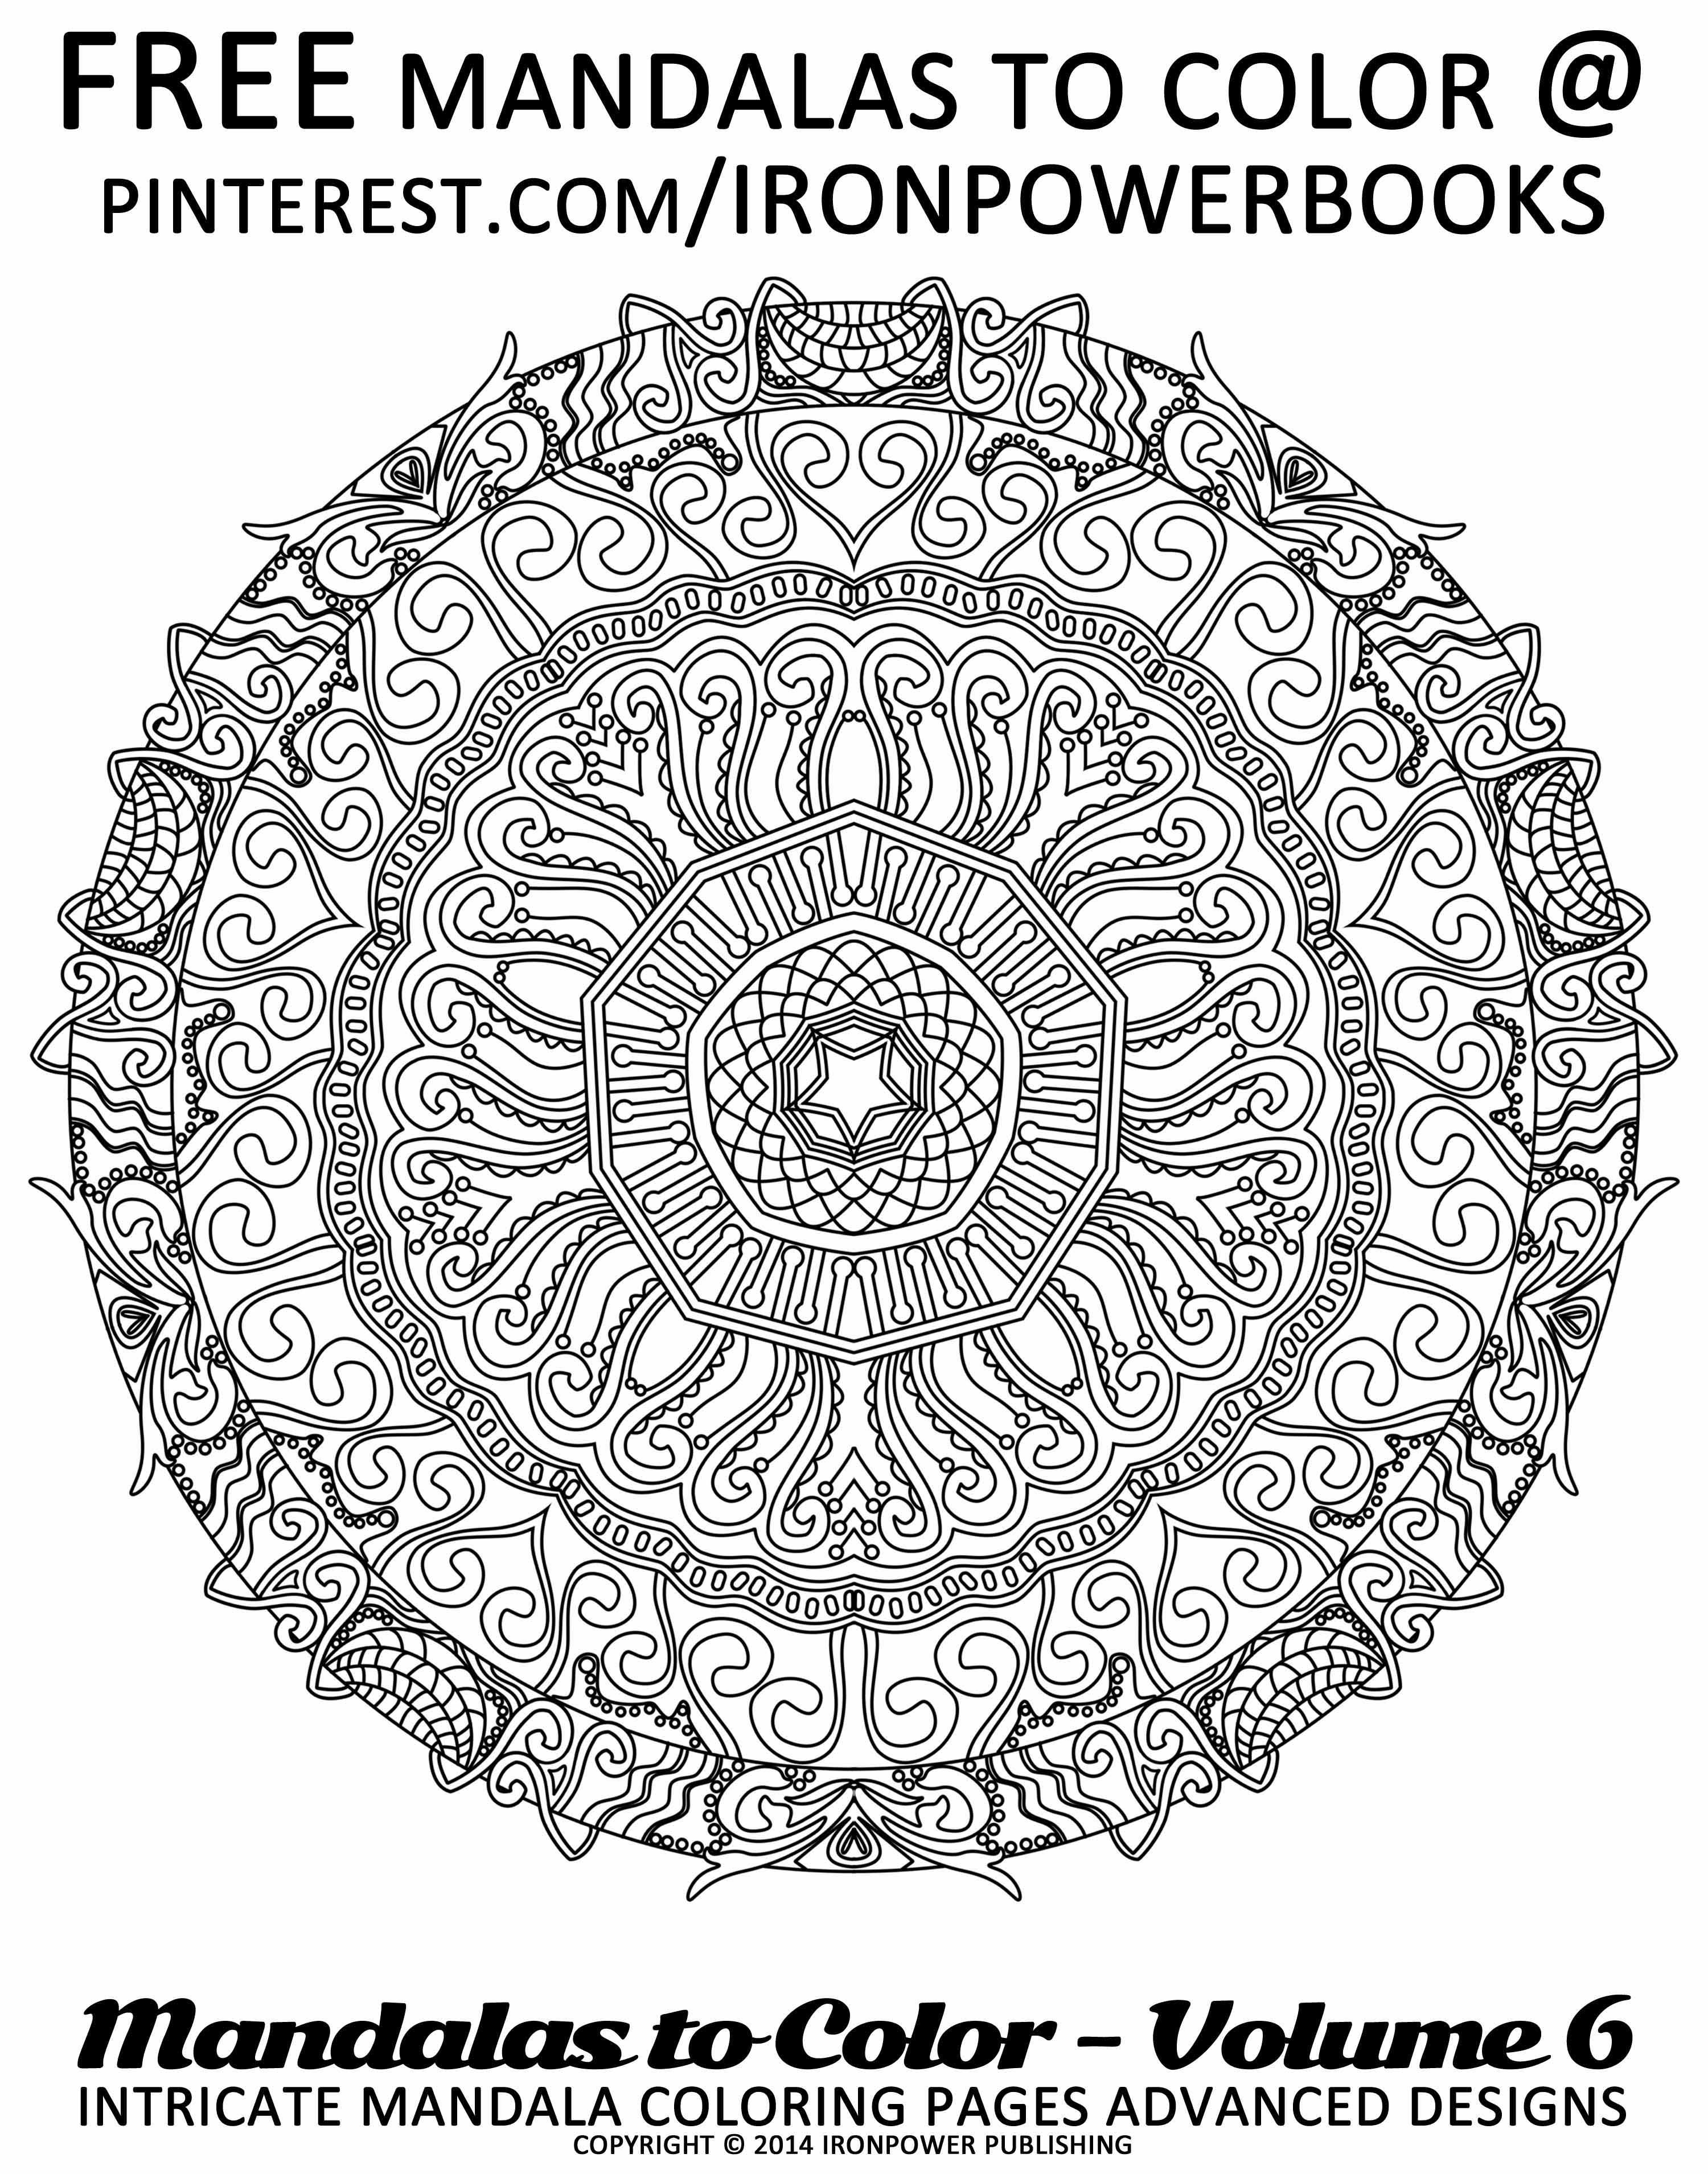 - Mandala Coloring Pages For Free @ironpowerbooks Visit Http://www